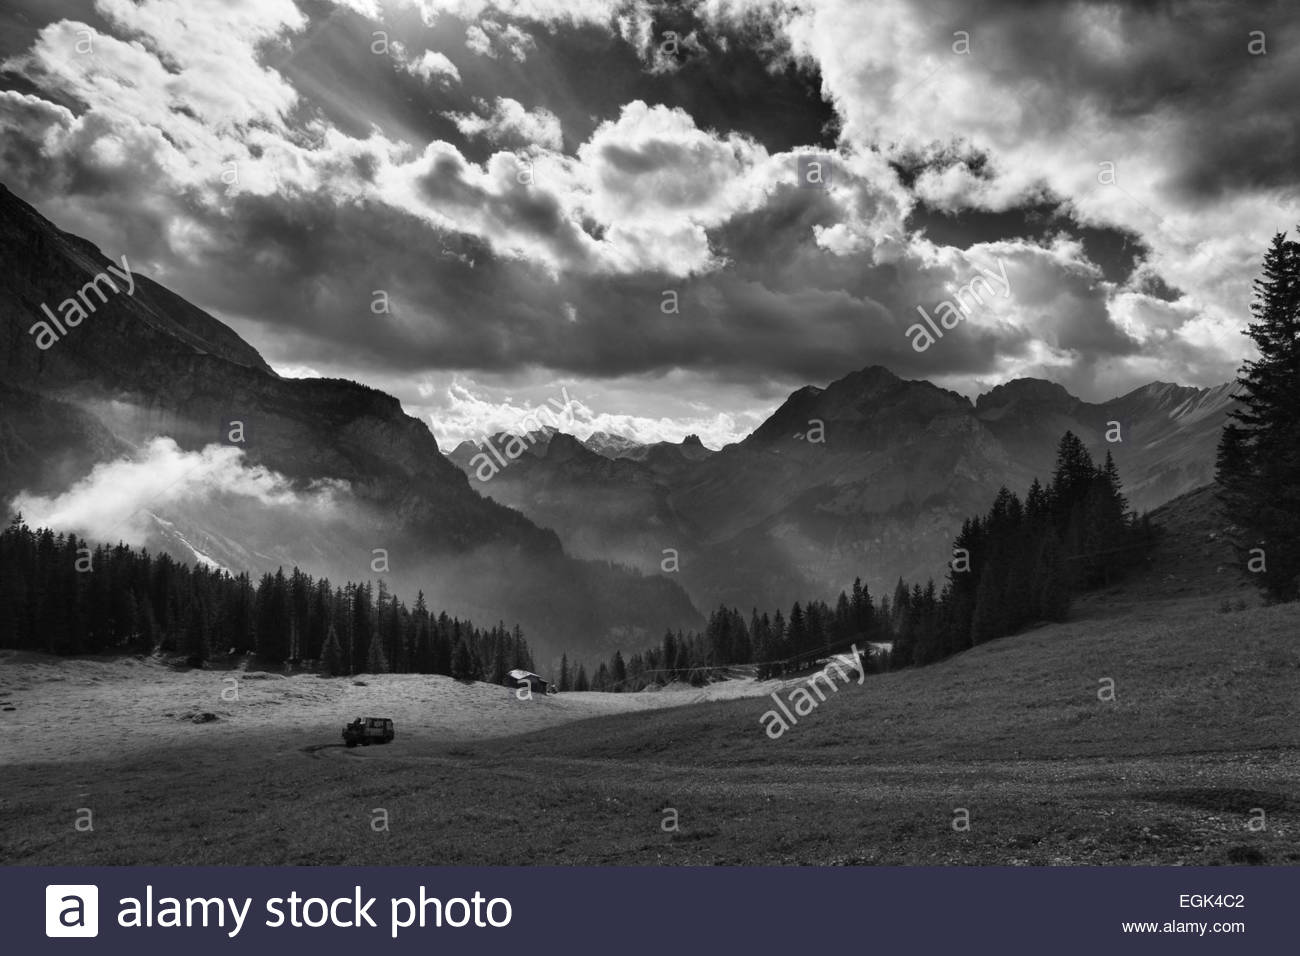 Majestic mountain view in black and white - Stock Image